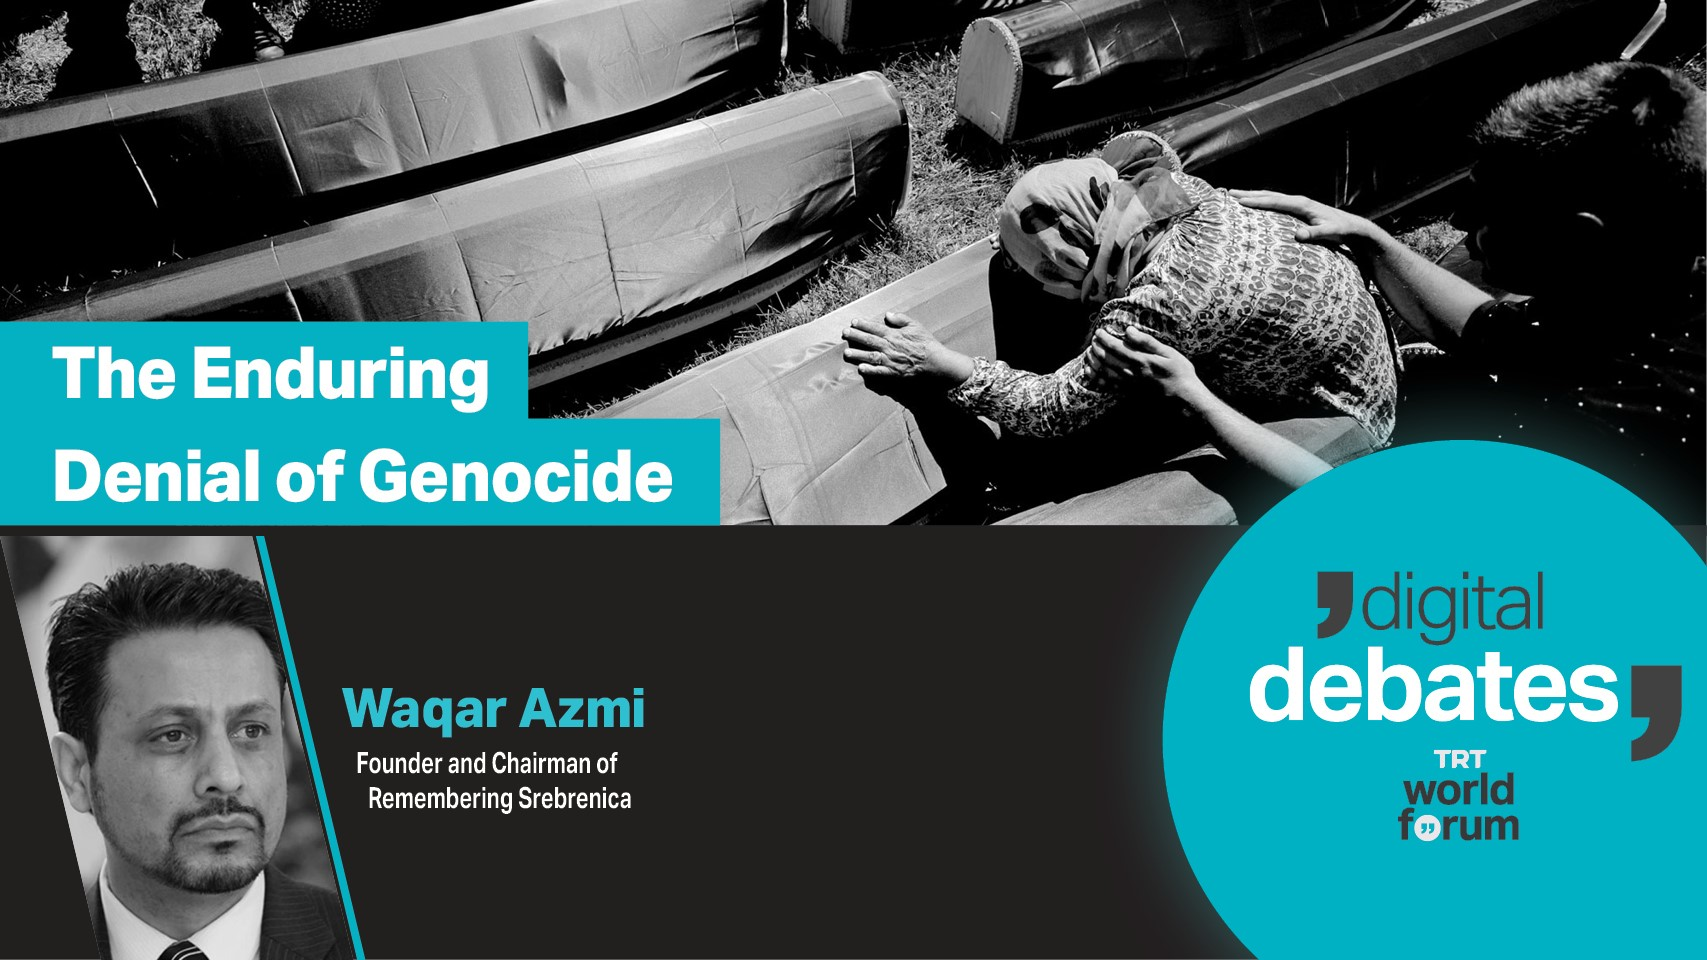 The EnduringDenial of Genocide